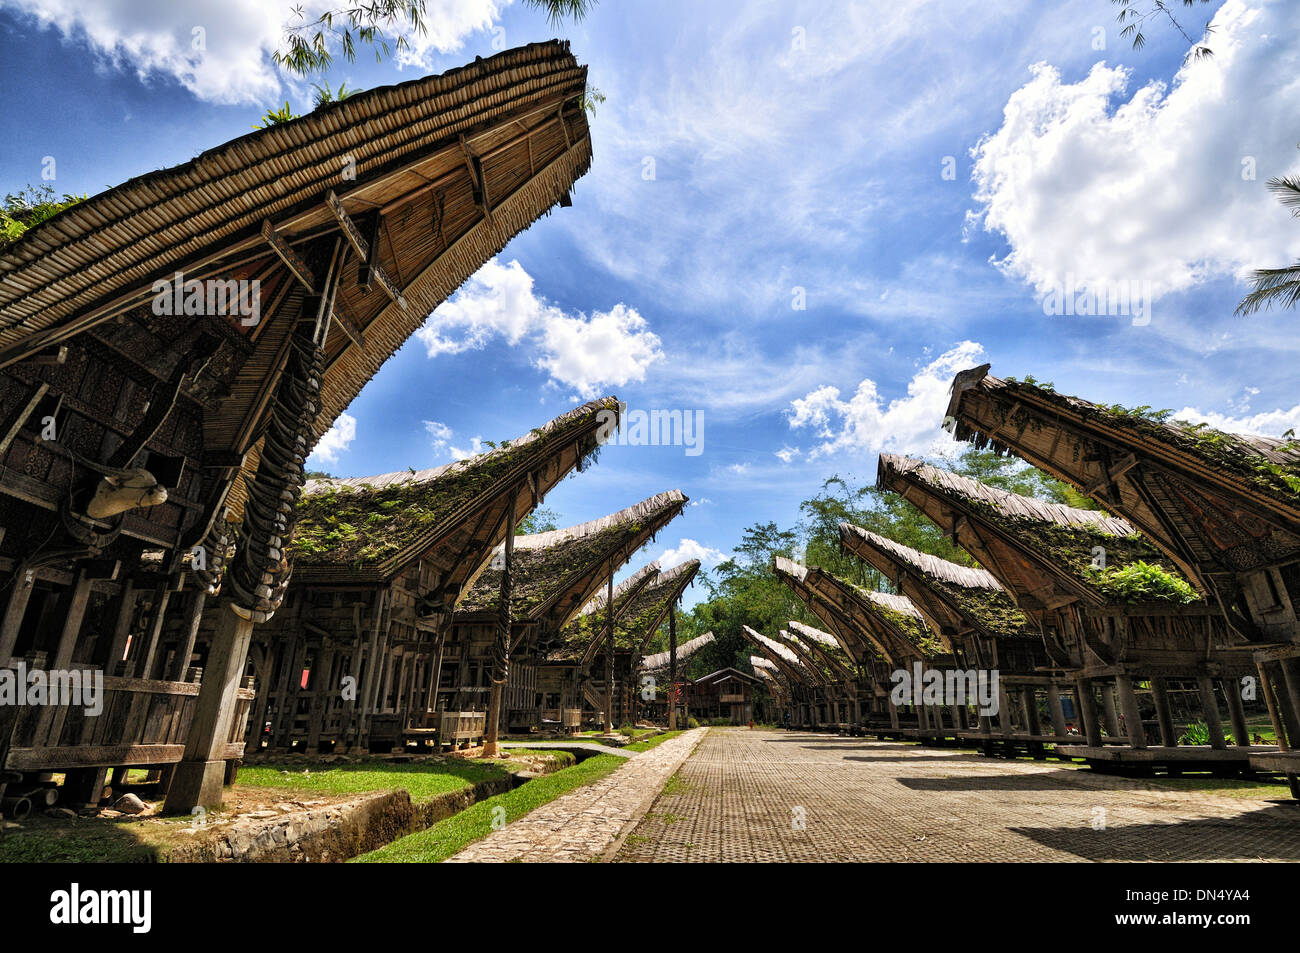 Kete Kesu of Tana Toraja, South Sulawesi - Stock Image